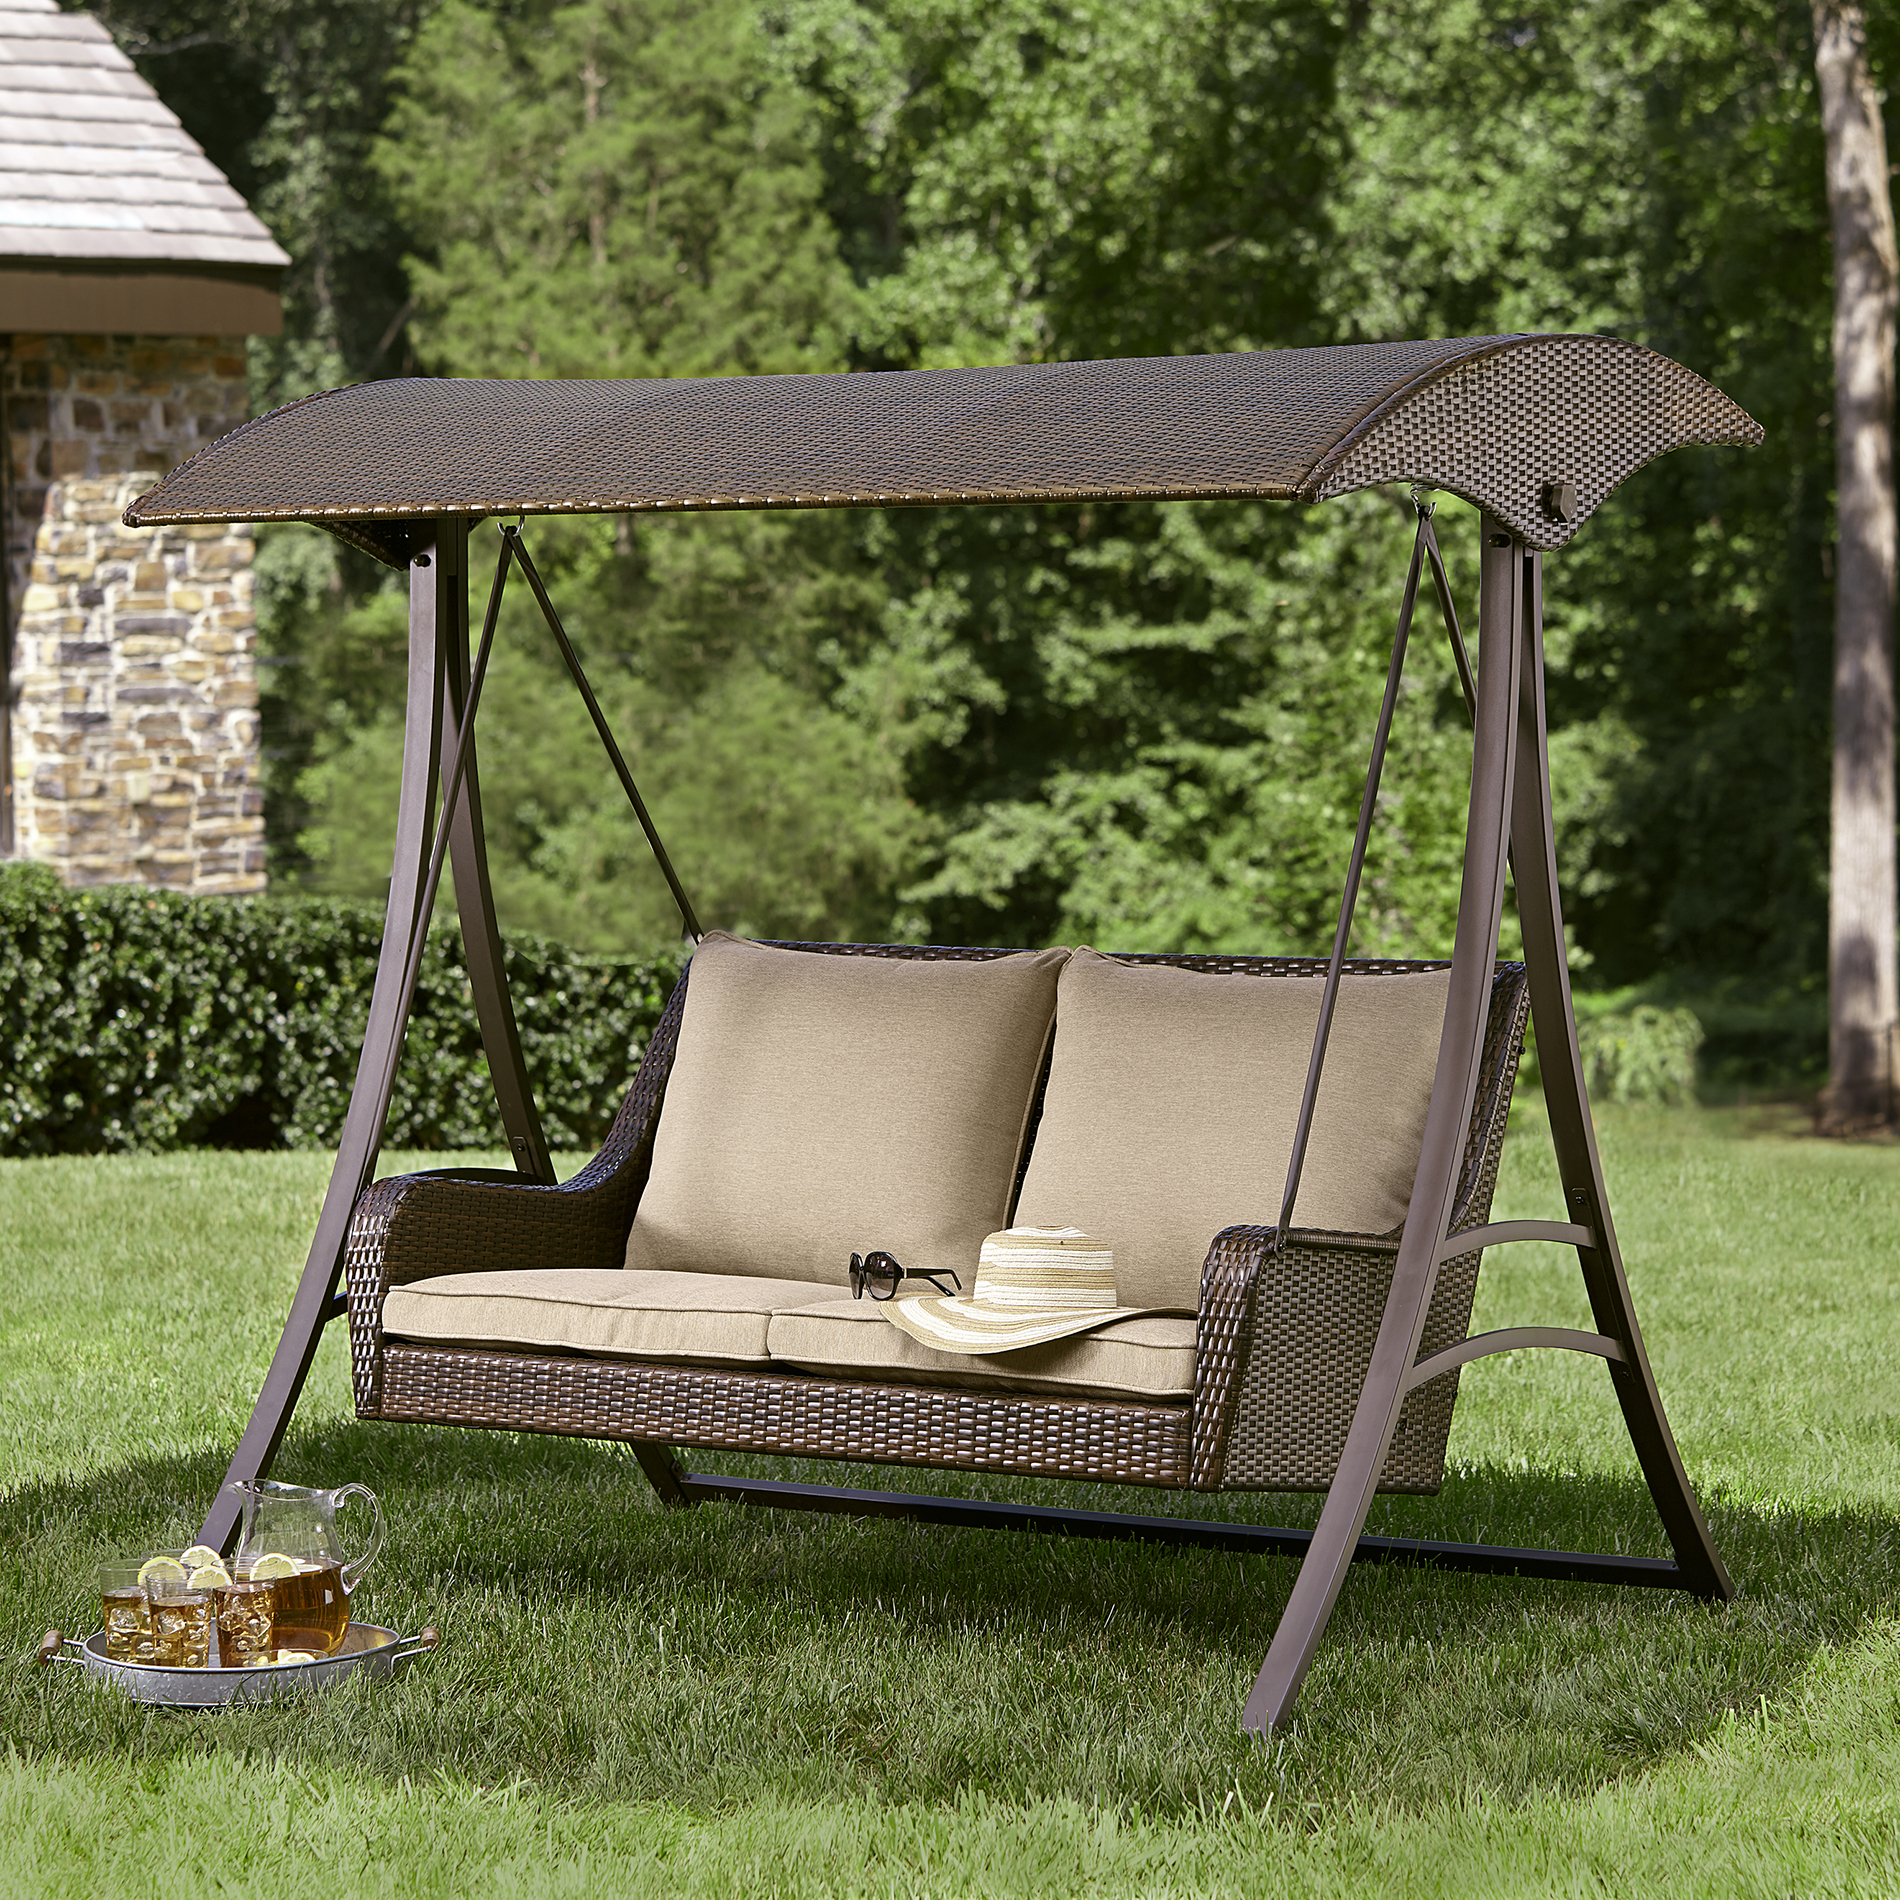 Patio Swings Find The Right Swing For Your Patio At Sears